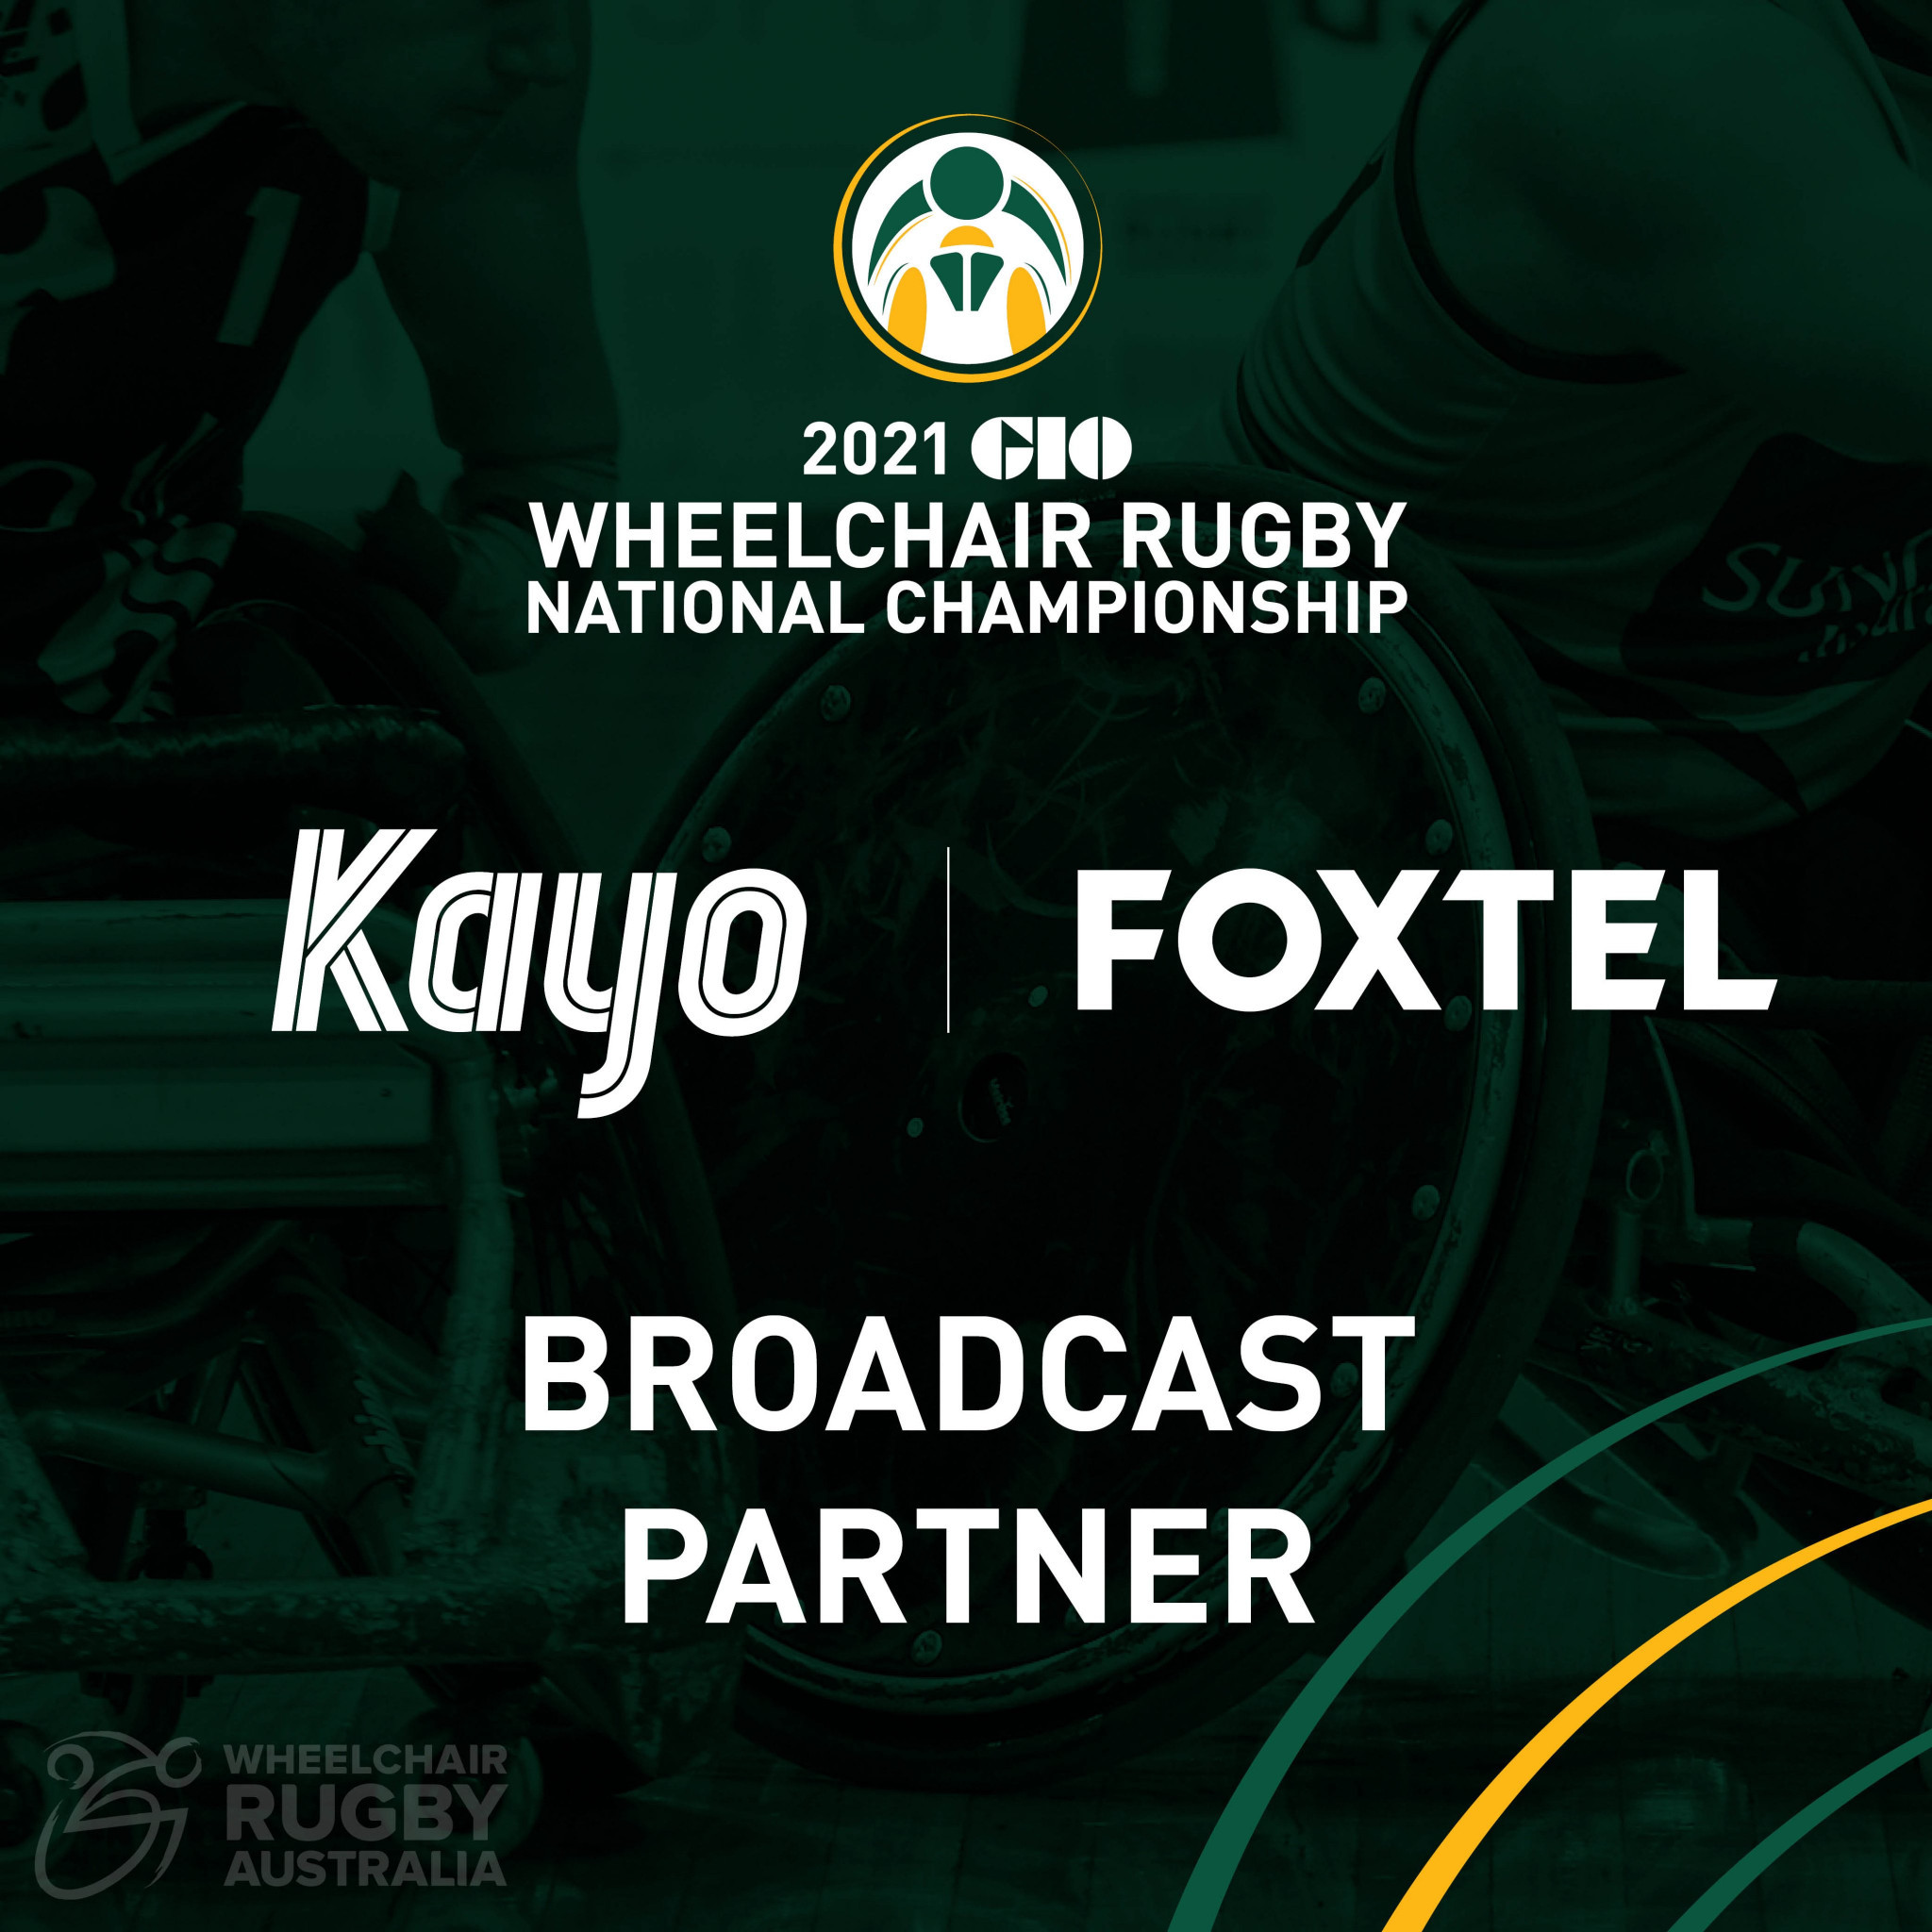 Australian Wheelchair Rugby National Championship to be streamed on Kayo Sports